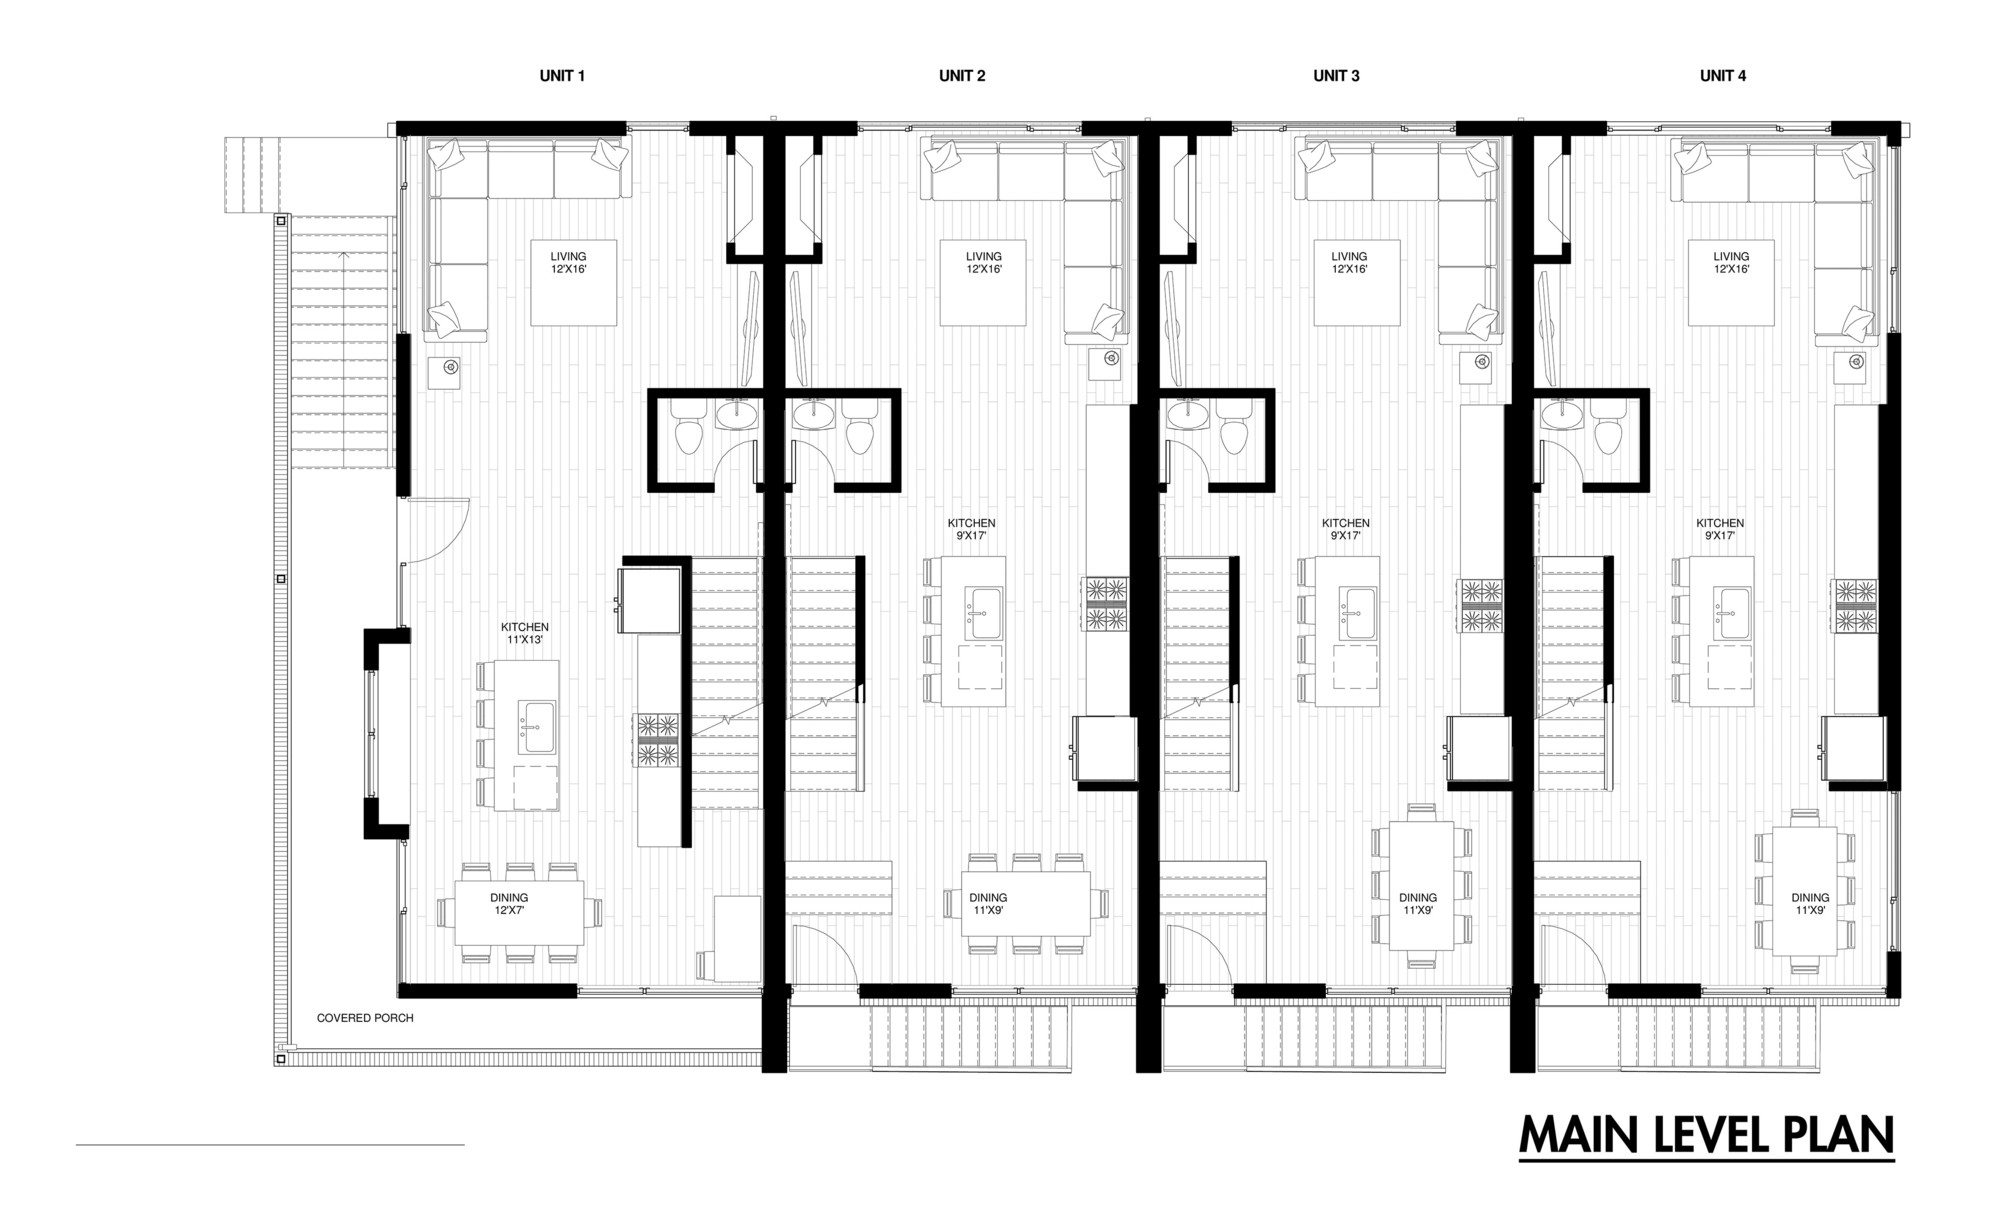 Row house plans row house plans town home plans six units for Houses layouts floor plans